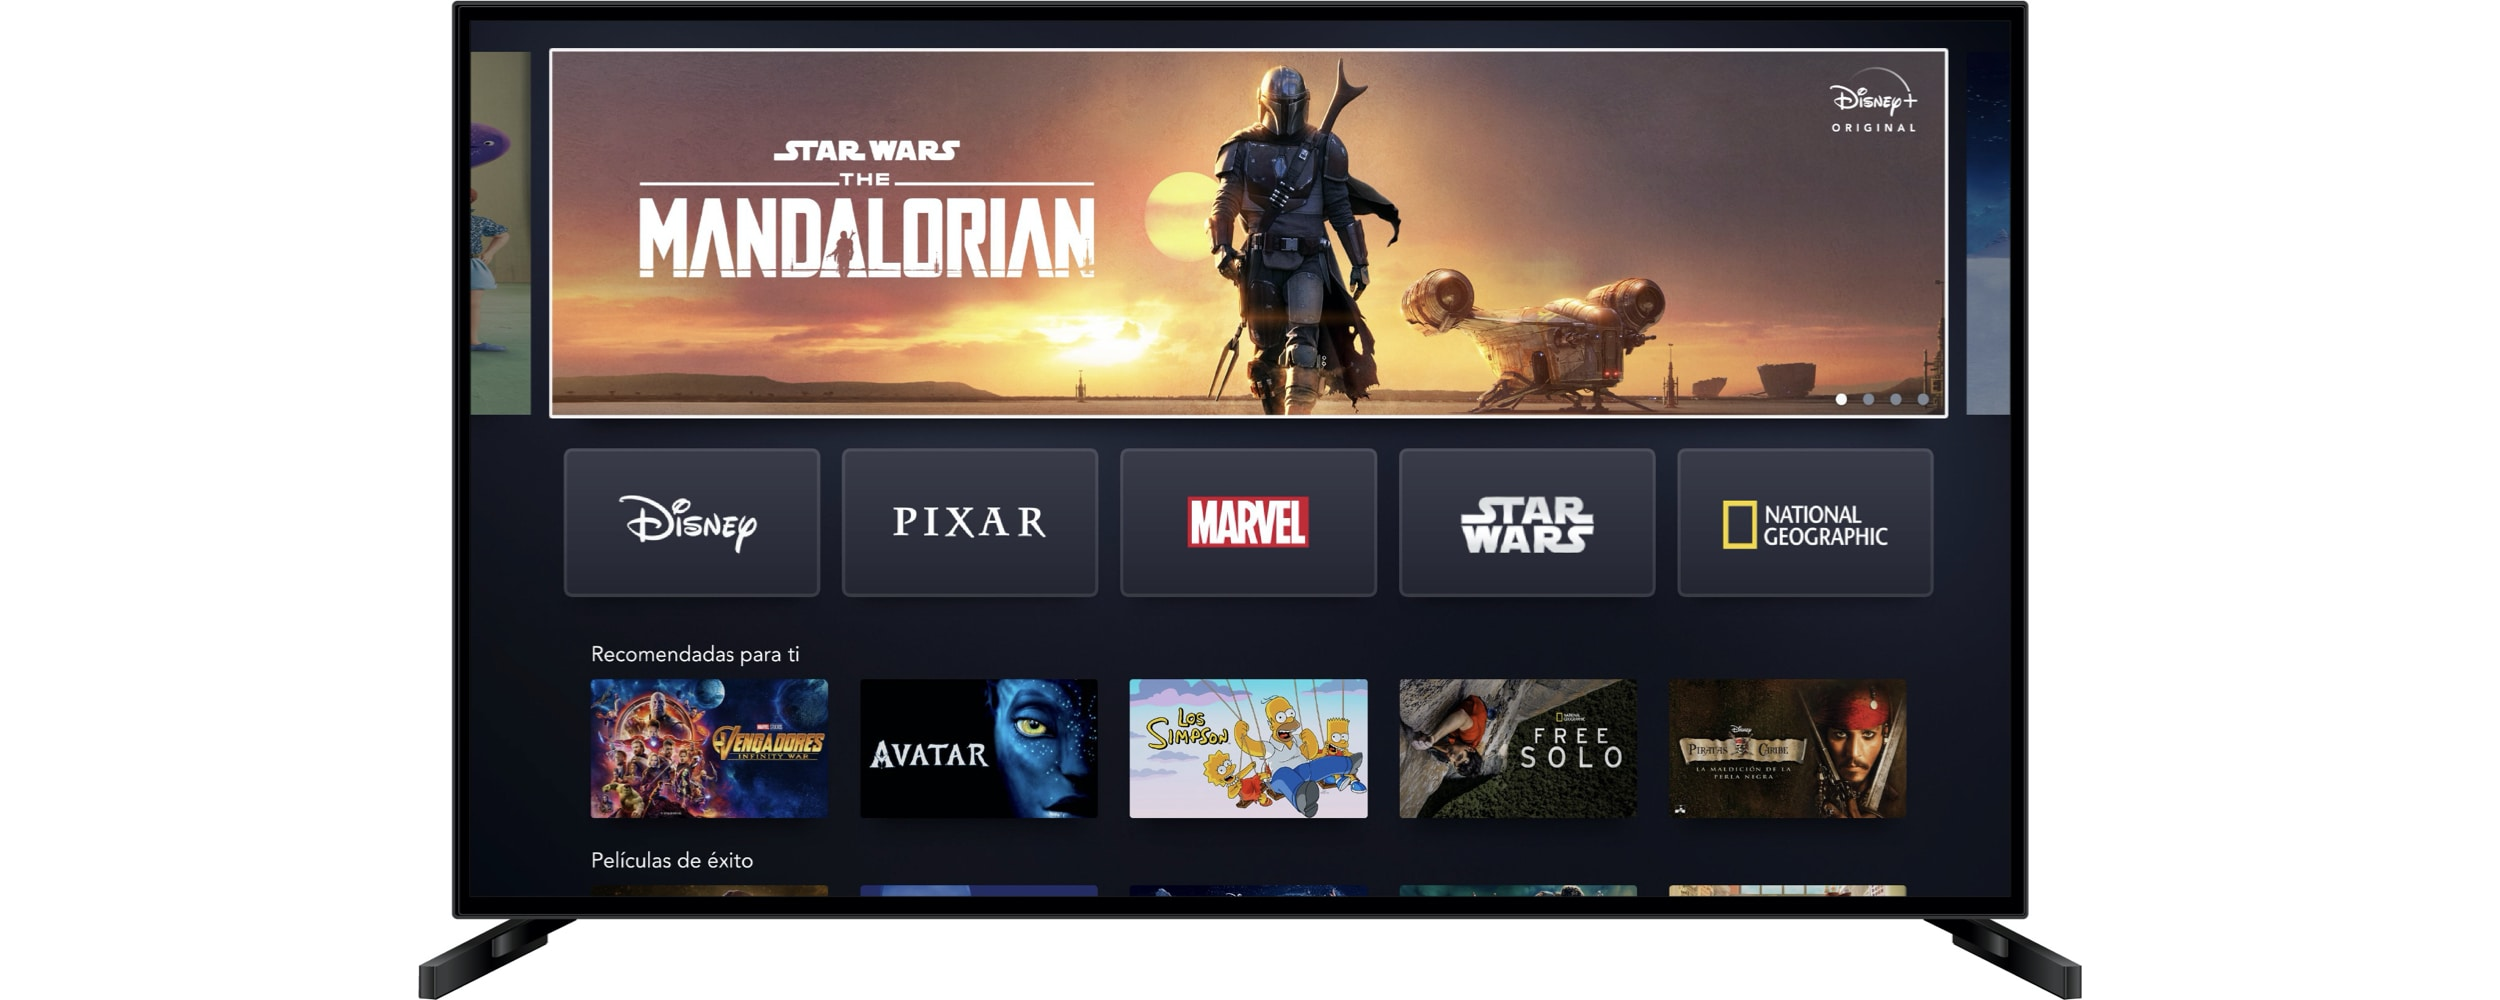 Disney+ home screen on Connected TV (Spain)